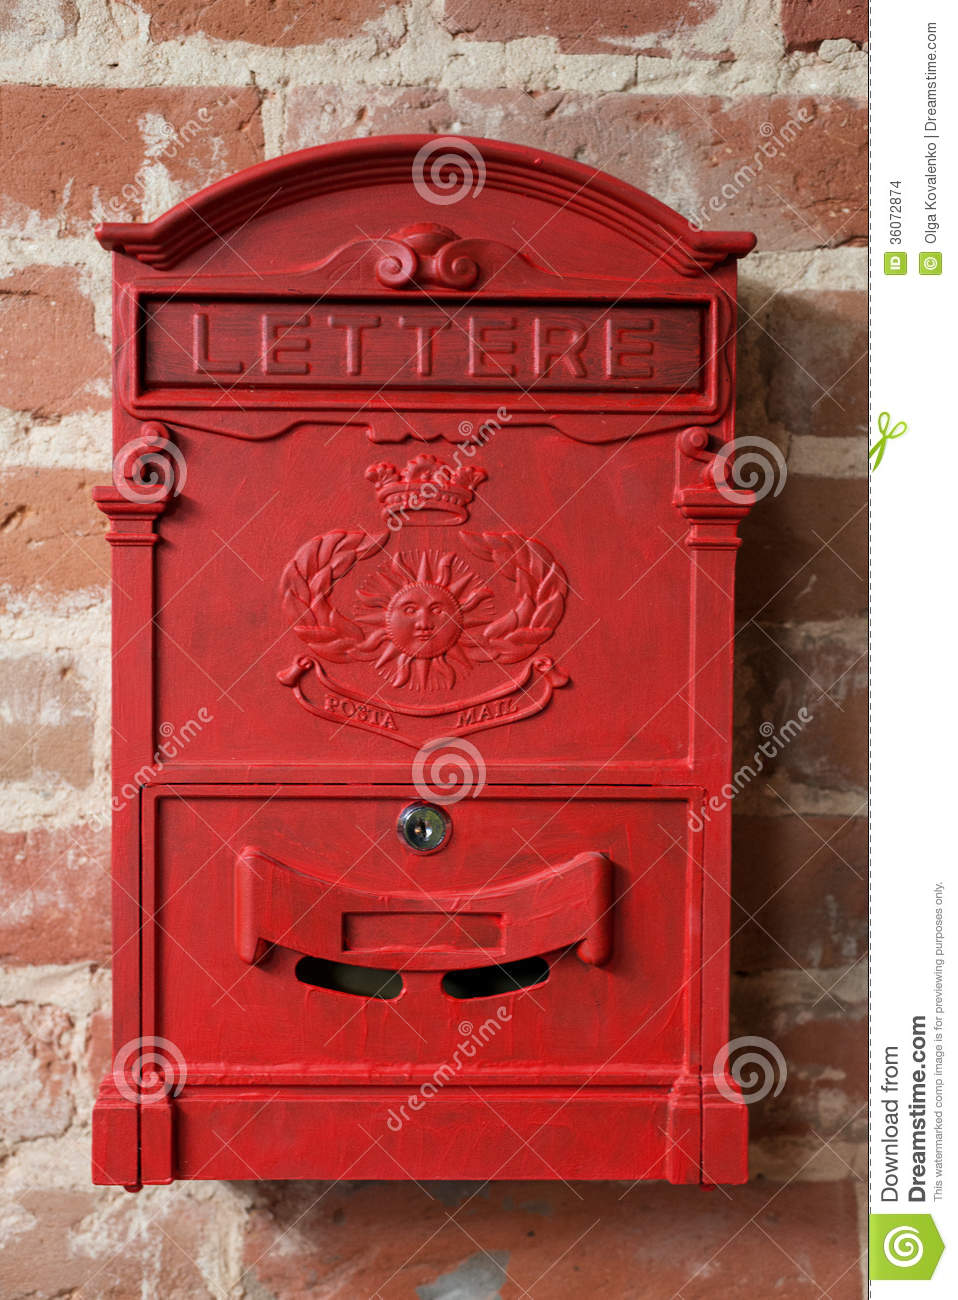 vintage red metal mail box stock photo image of letterbox 36072874. Black Bedroom Furniture Sets. Home Design Ideas